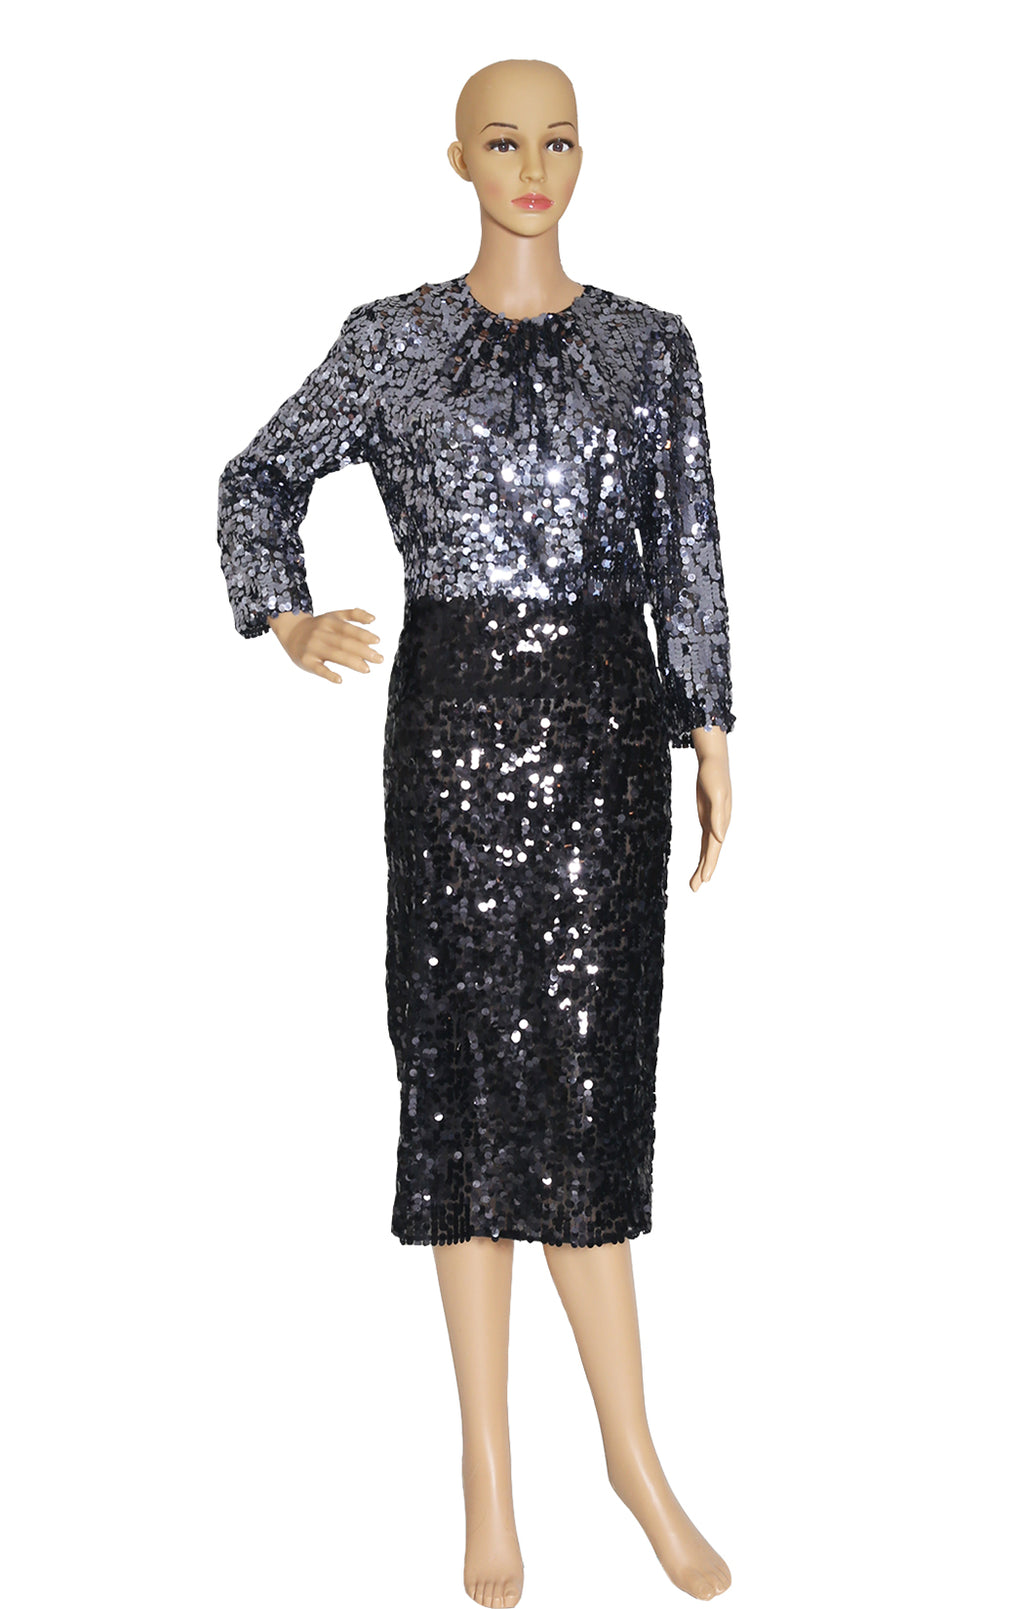 Front view of DOLCE AND GABBANA Full Sequined Dress with Tags Size: IT 44 (US 8)